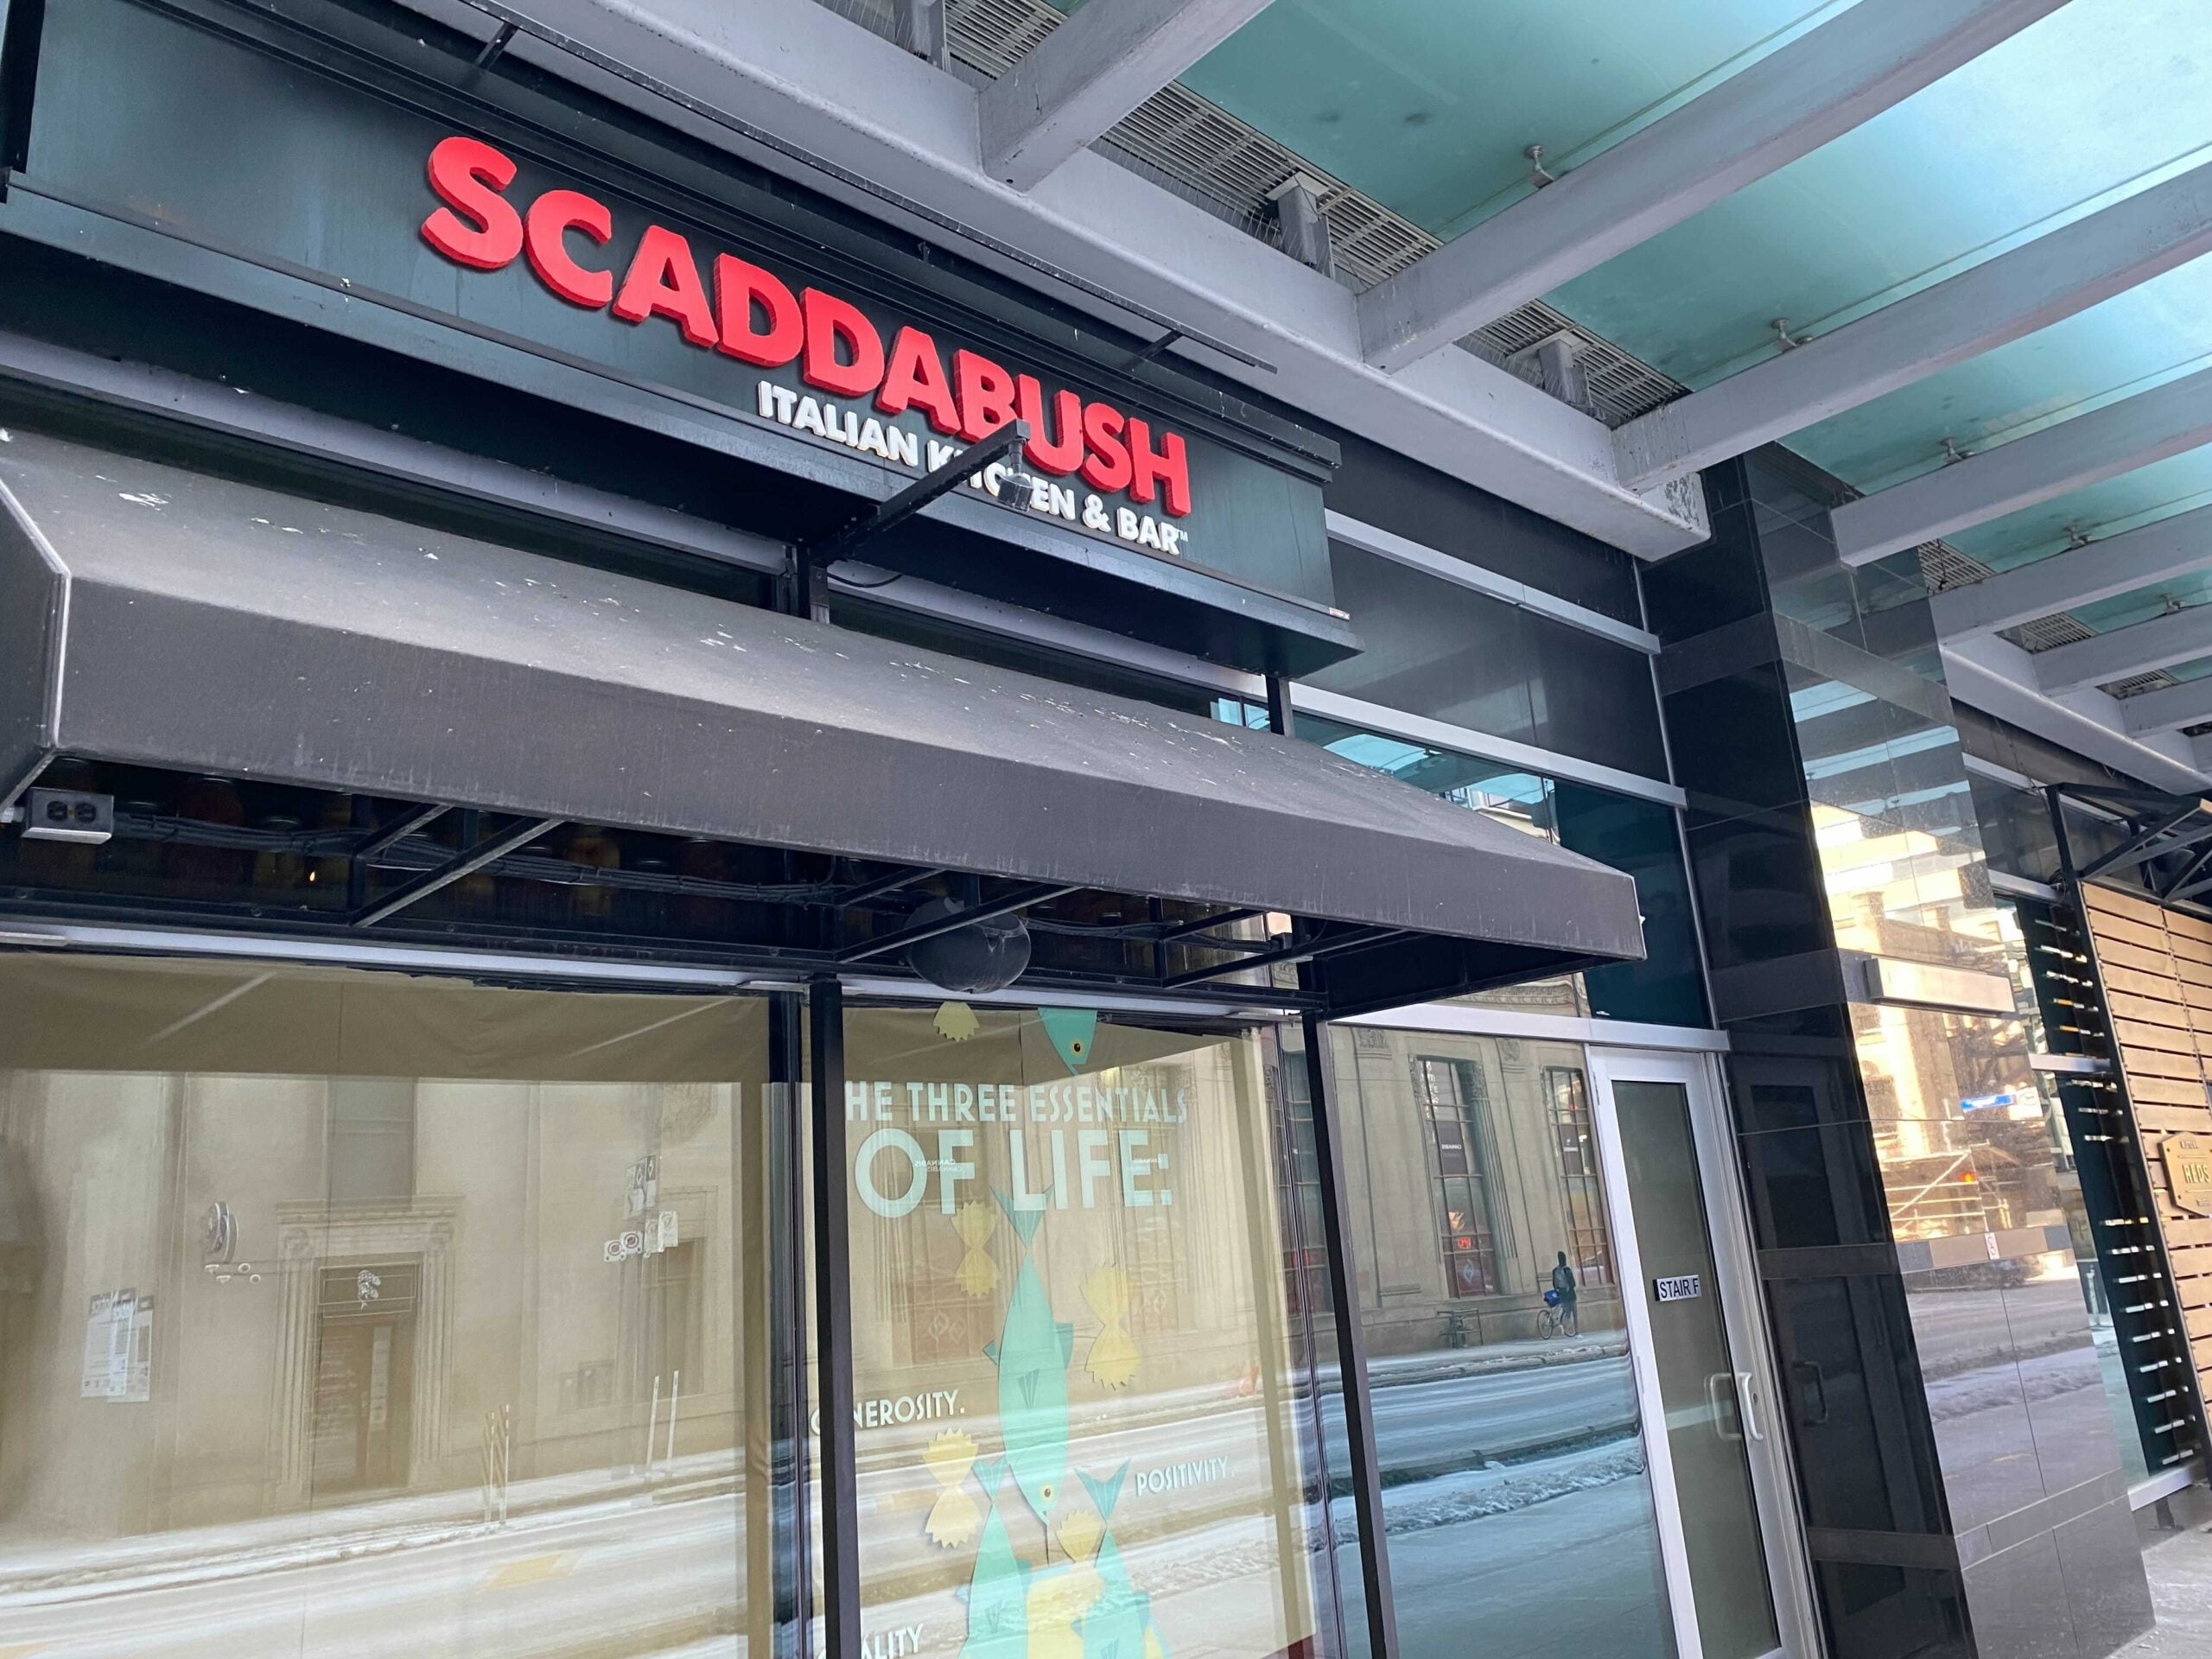 Exterior of Scaddabush at Aura Centre which is closing. Photo: Dustin Fuhs